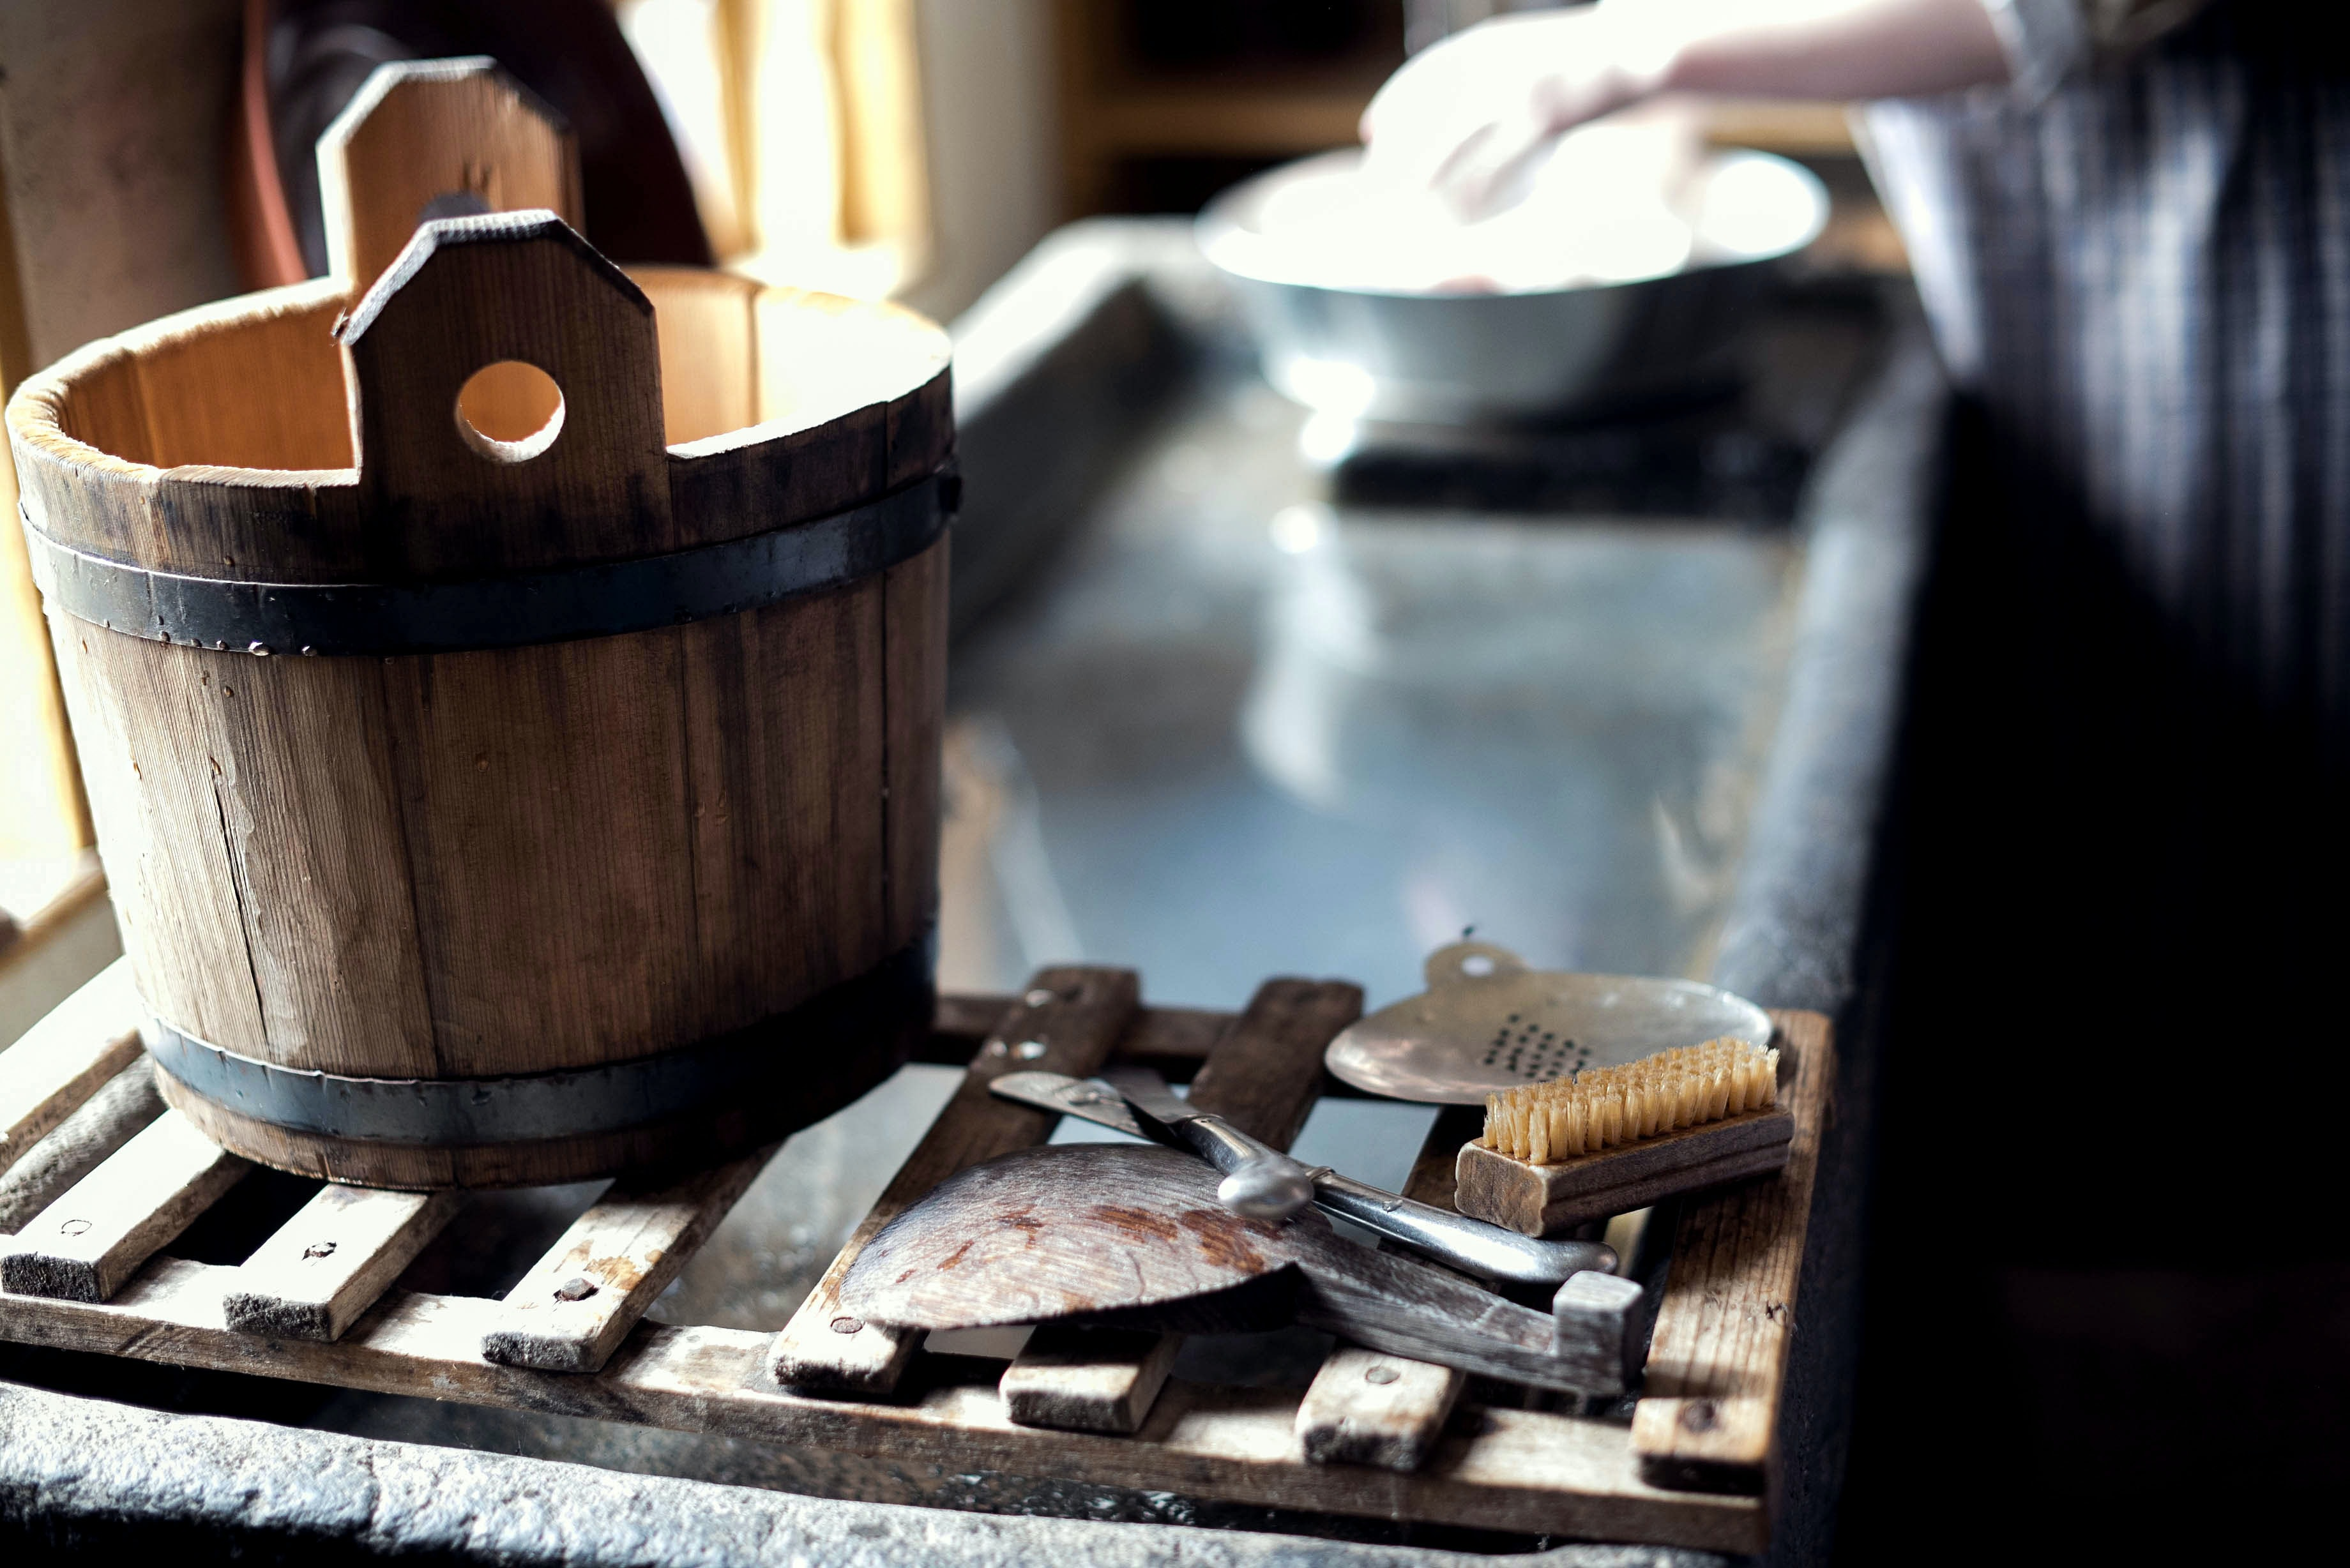 A wooden bucket, brush, and other cleaning supplies resting on a sink ledge while a person washes dishes in Sturbridge